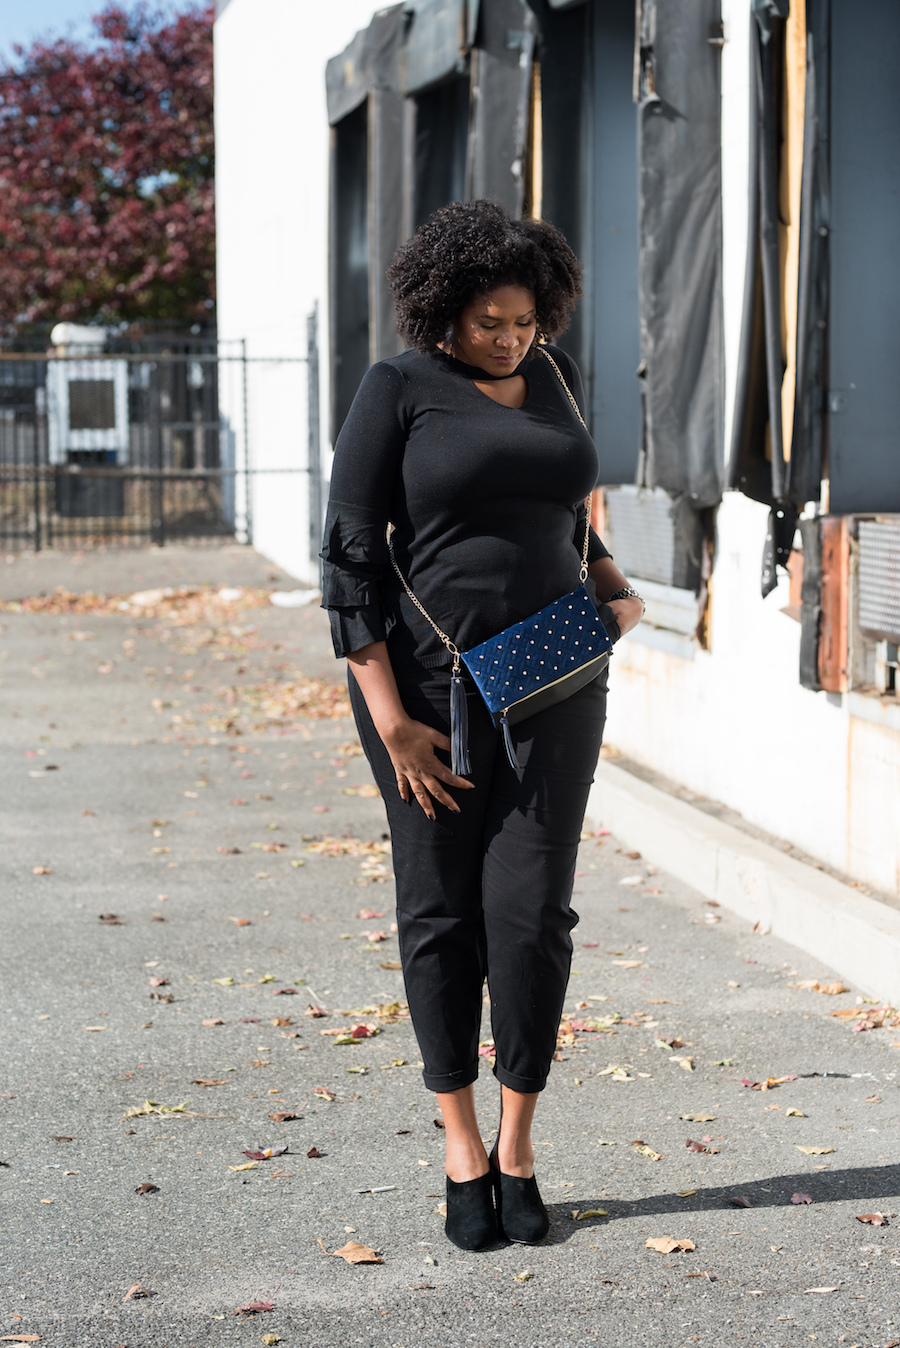 b3f7f49fbe1 Alloy is committed to bringing you the most fashionable styles in extended  sizes without extended prices. Now let s get into our picks